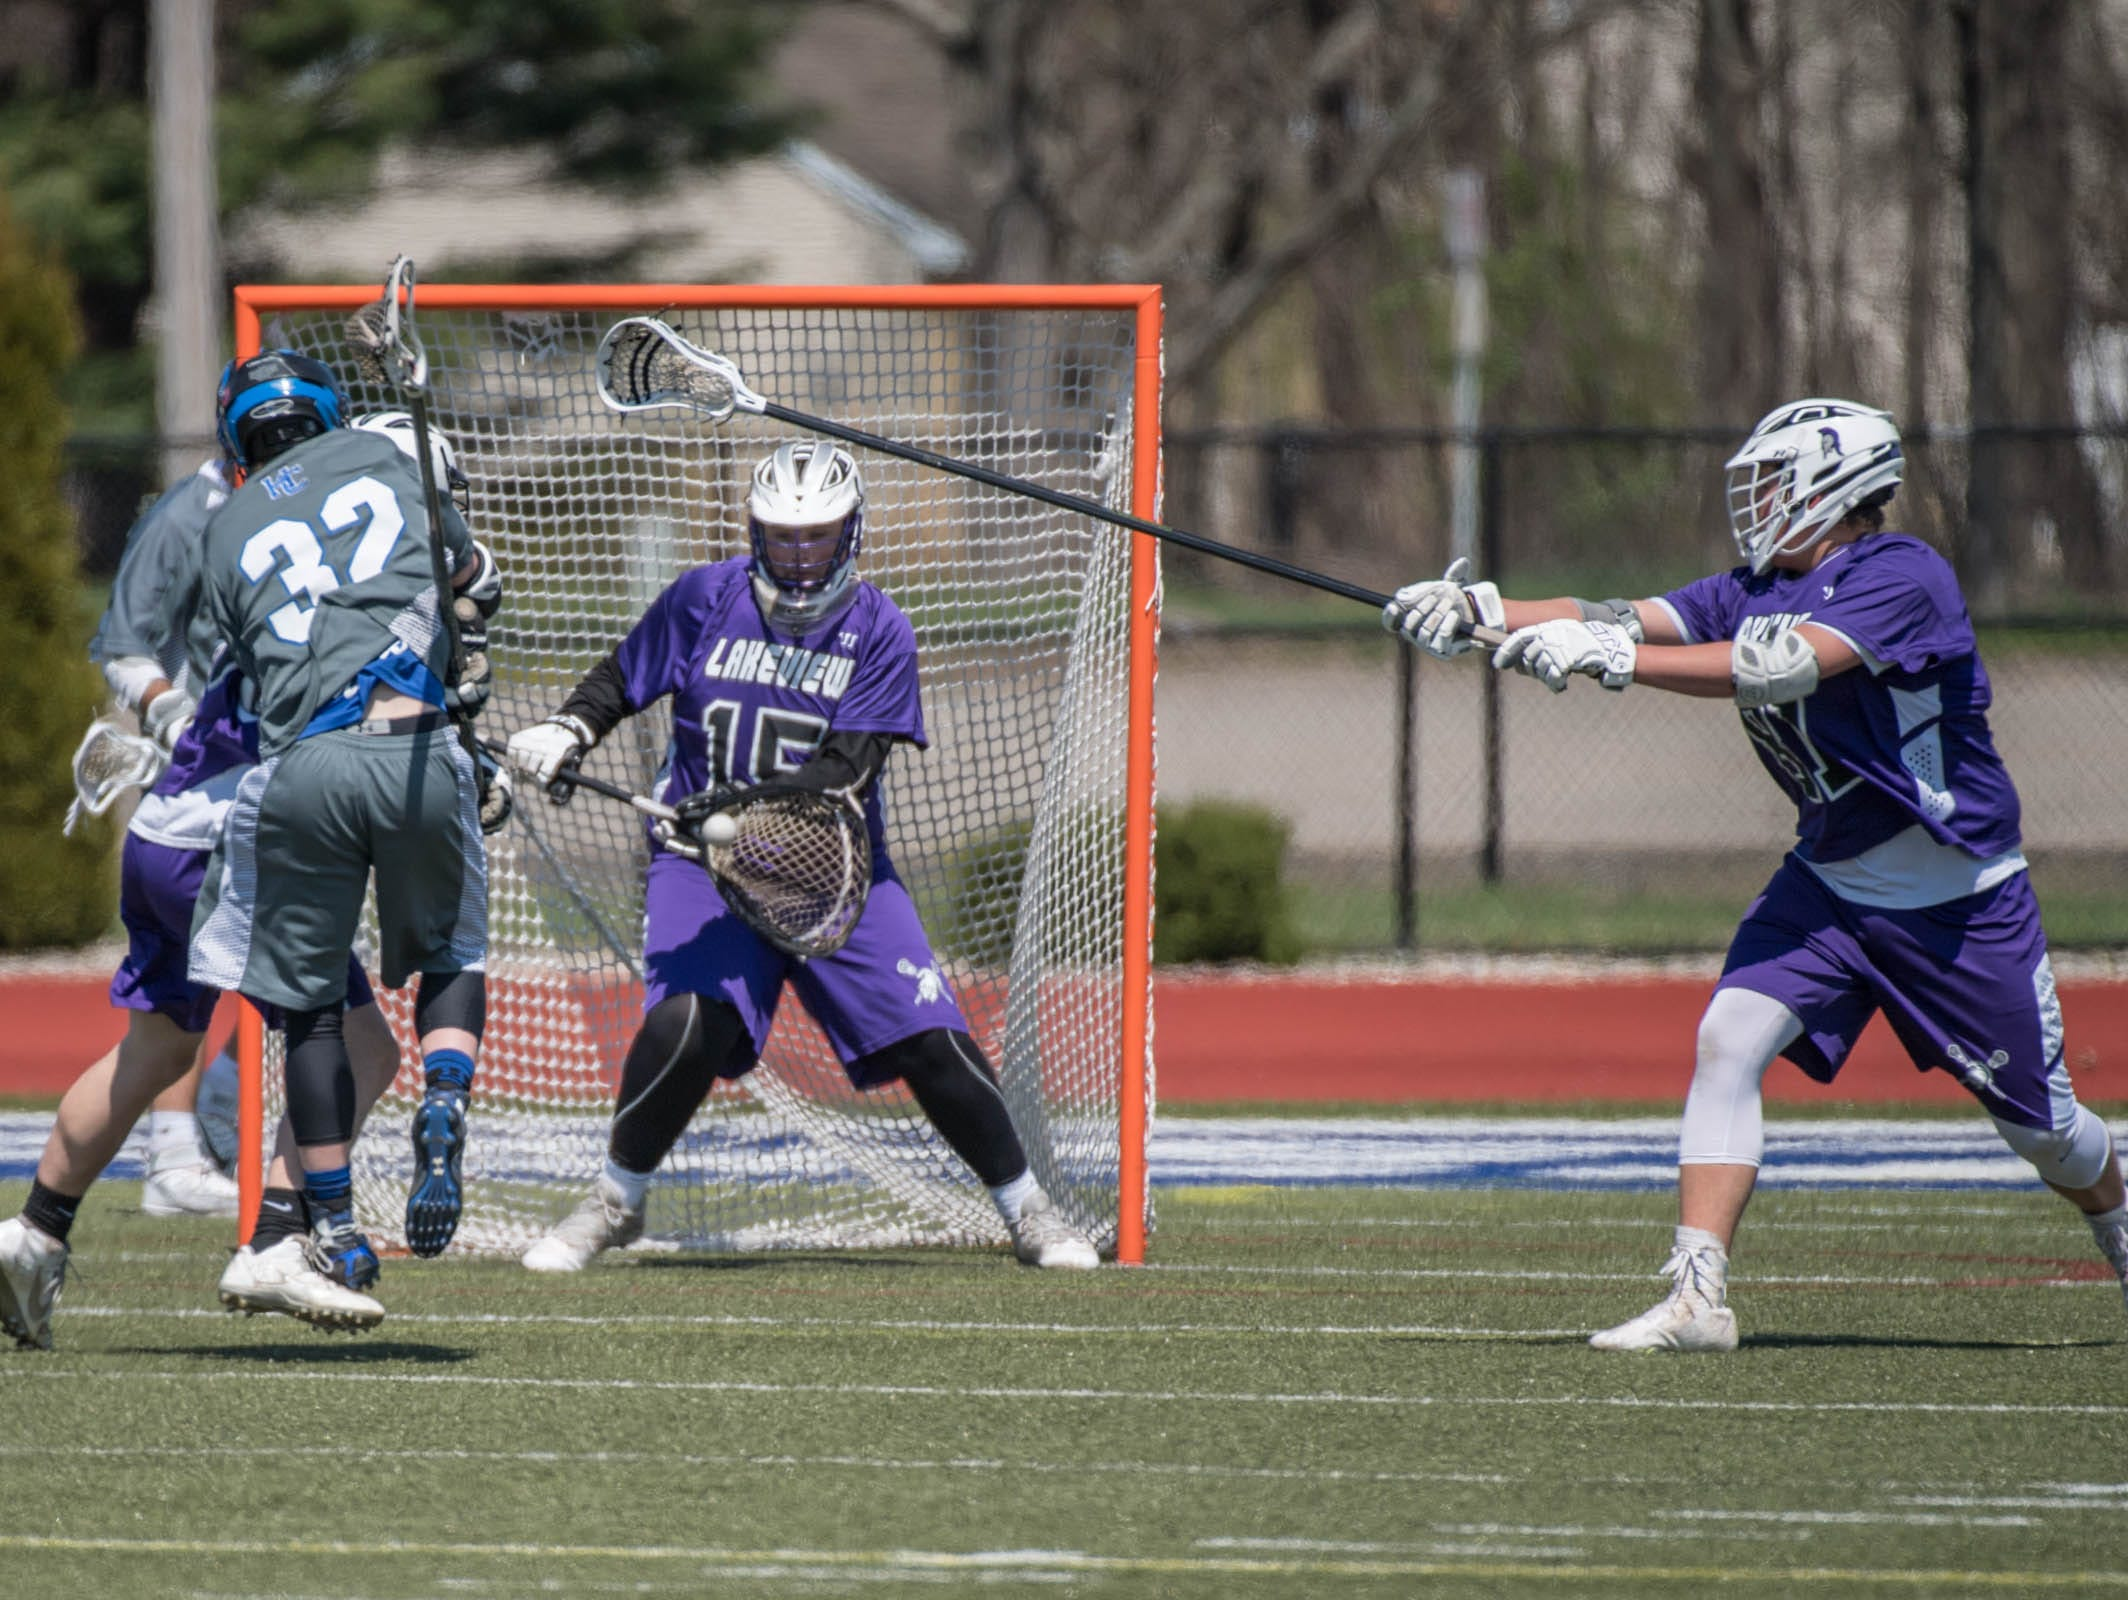 Lakeview's Jace Canfield (15) stops a score against Harper Creek in the All City Lacrosse Tournament on Saturday.